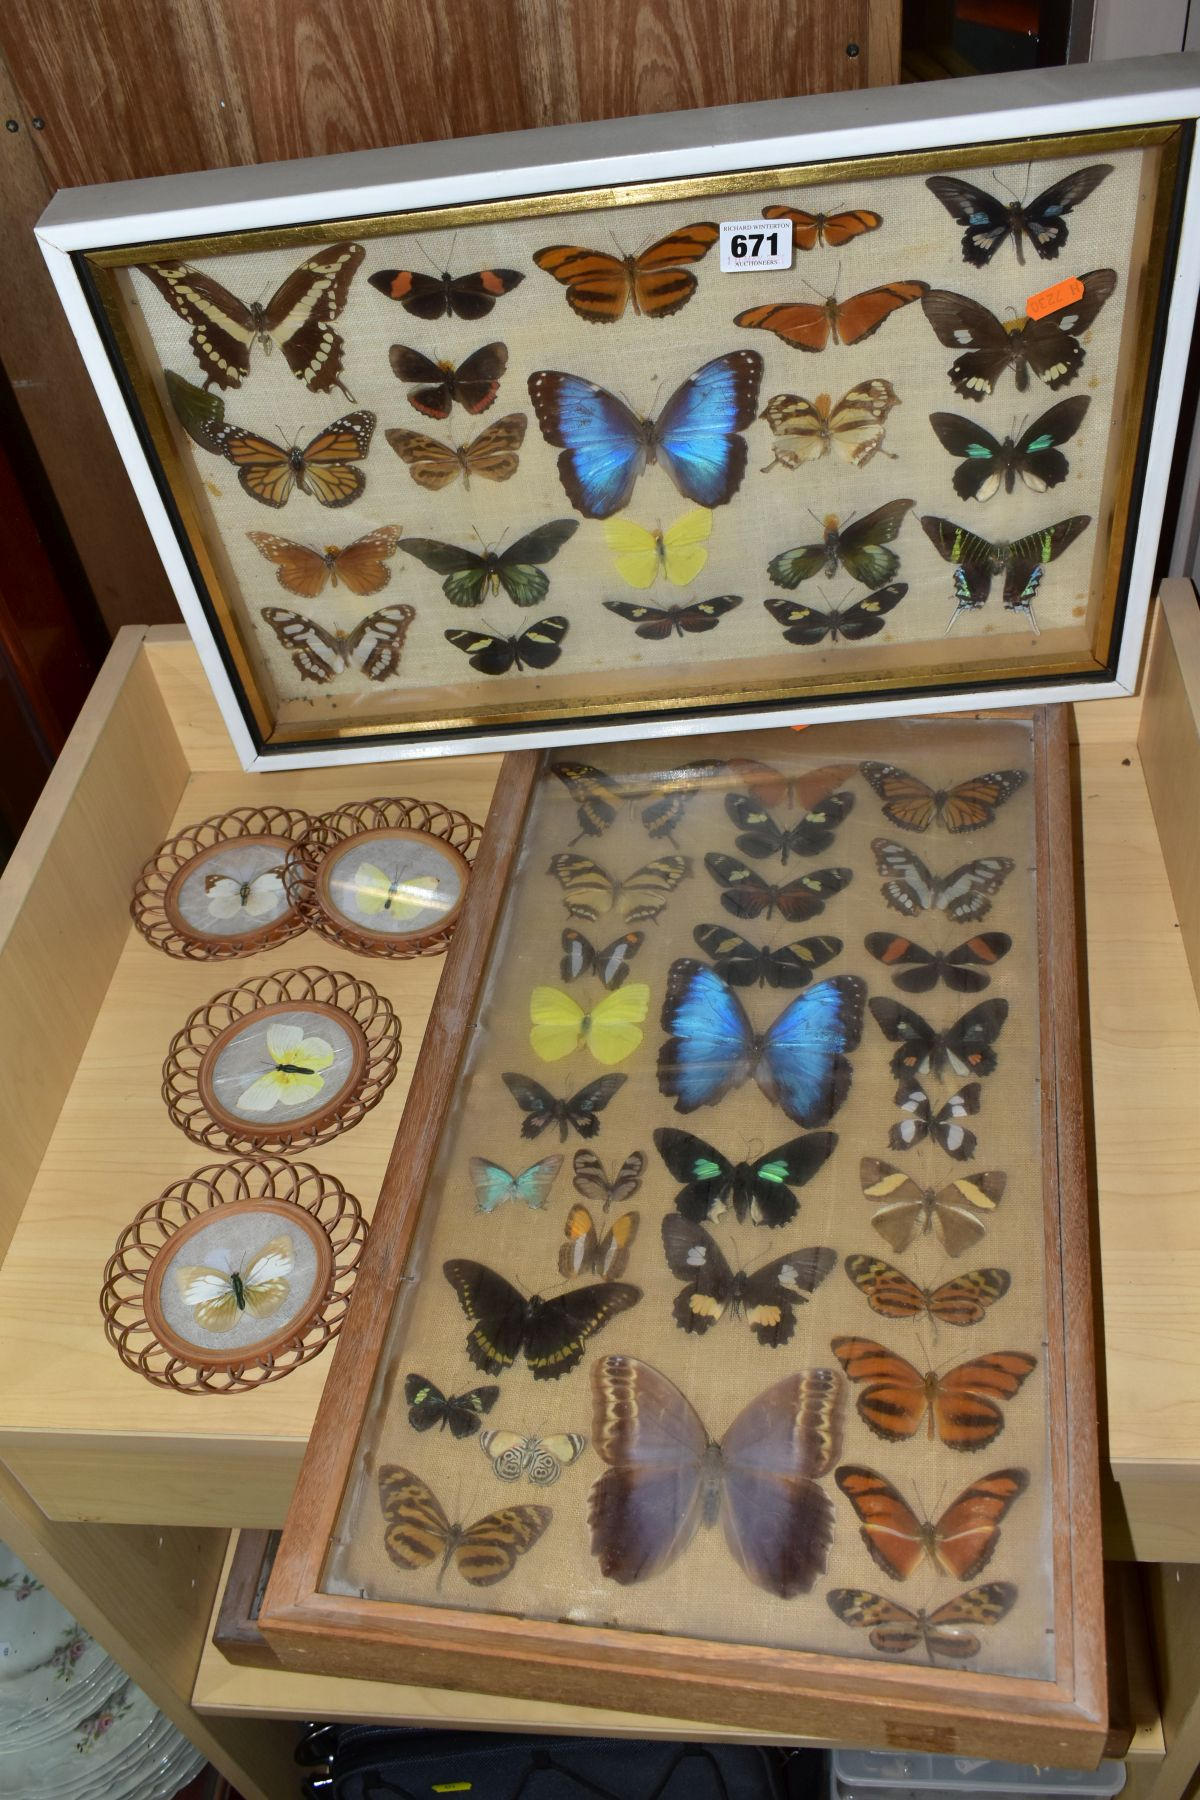 THREE DISPLAY CASES CONTAINING BUTTERFLIES AND MOTH SPECIMENS, together with four circular framed